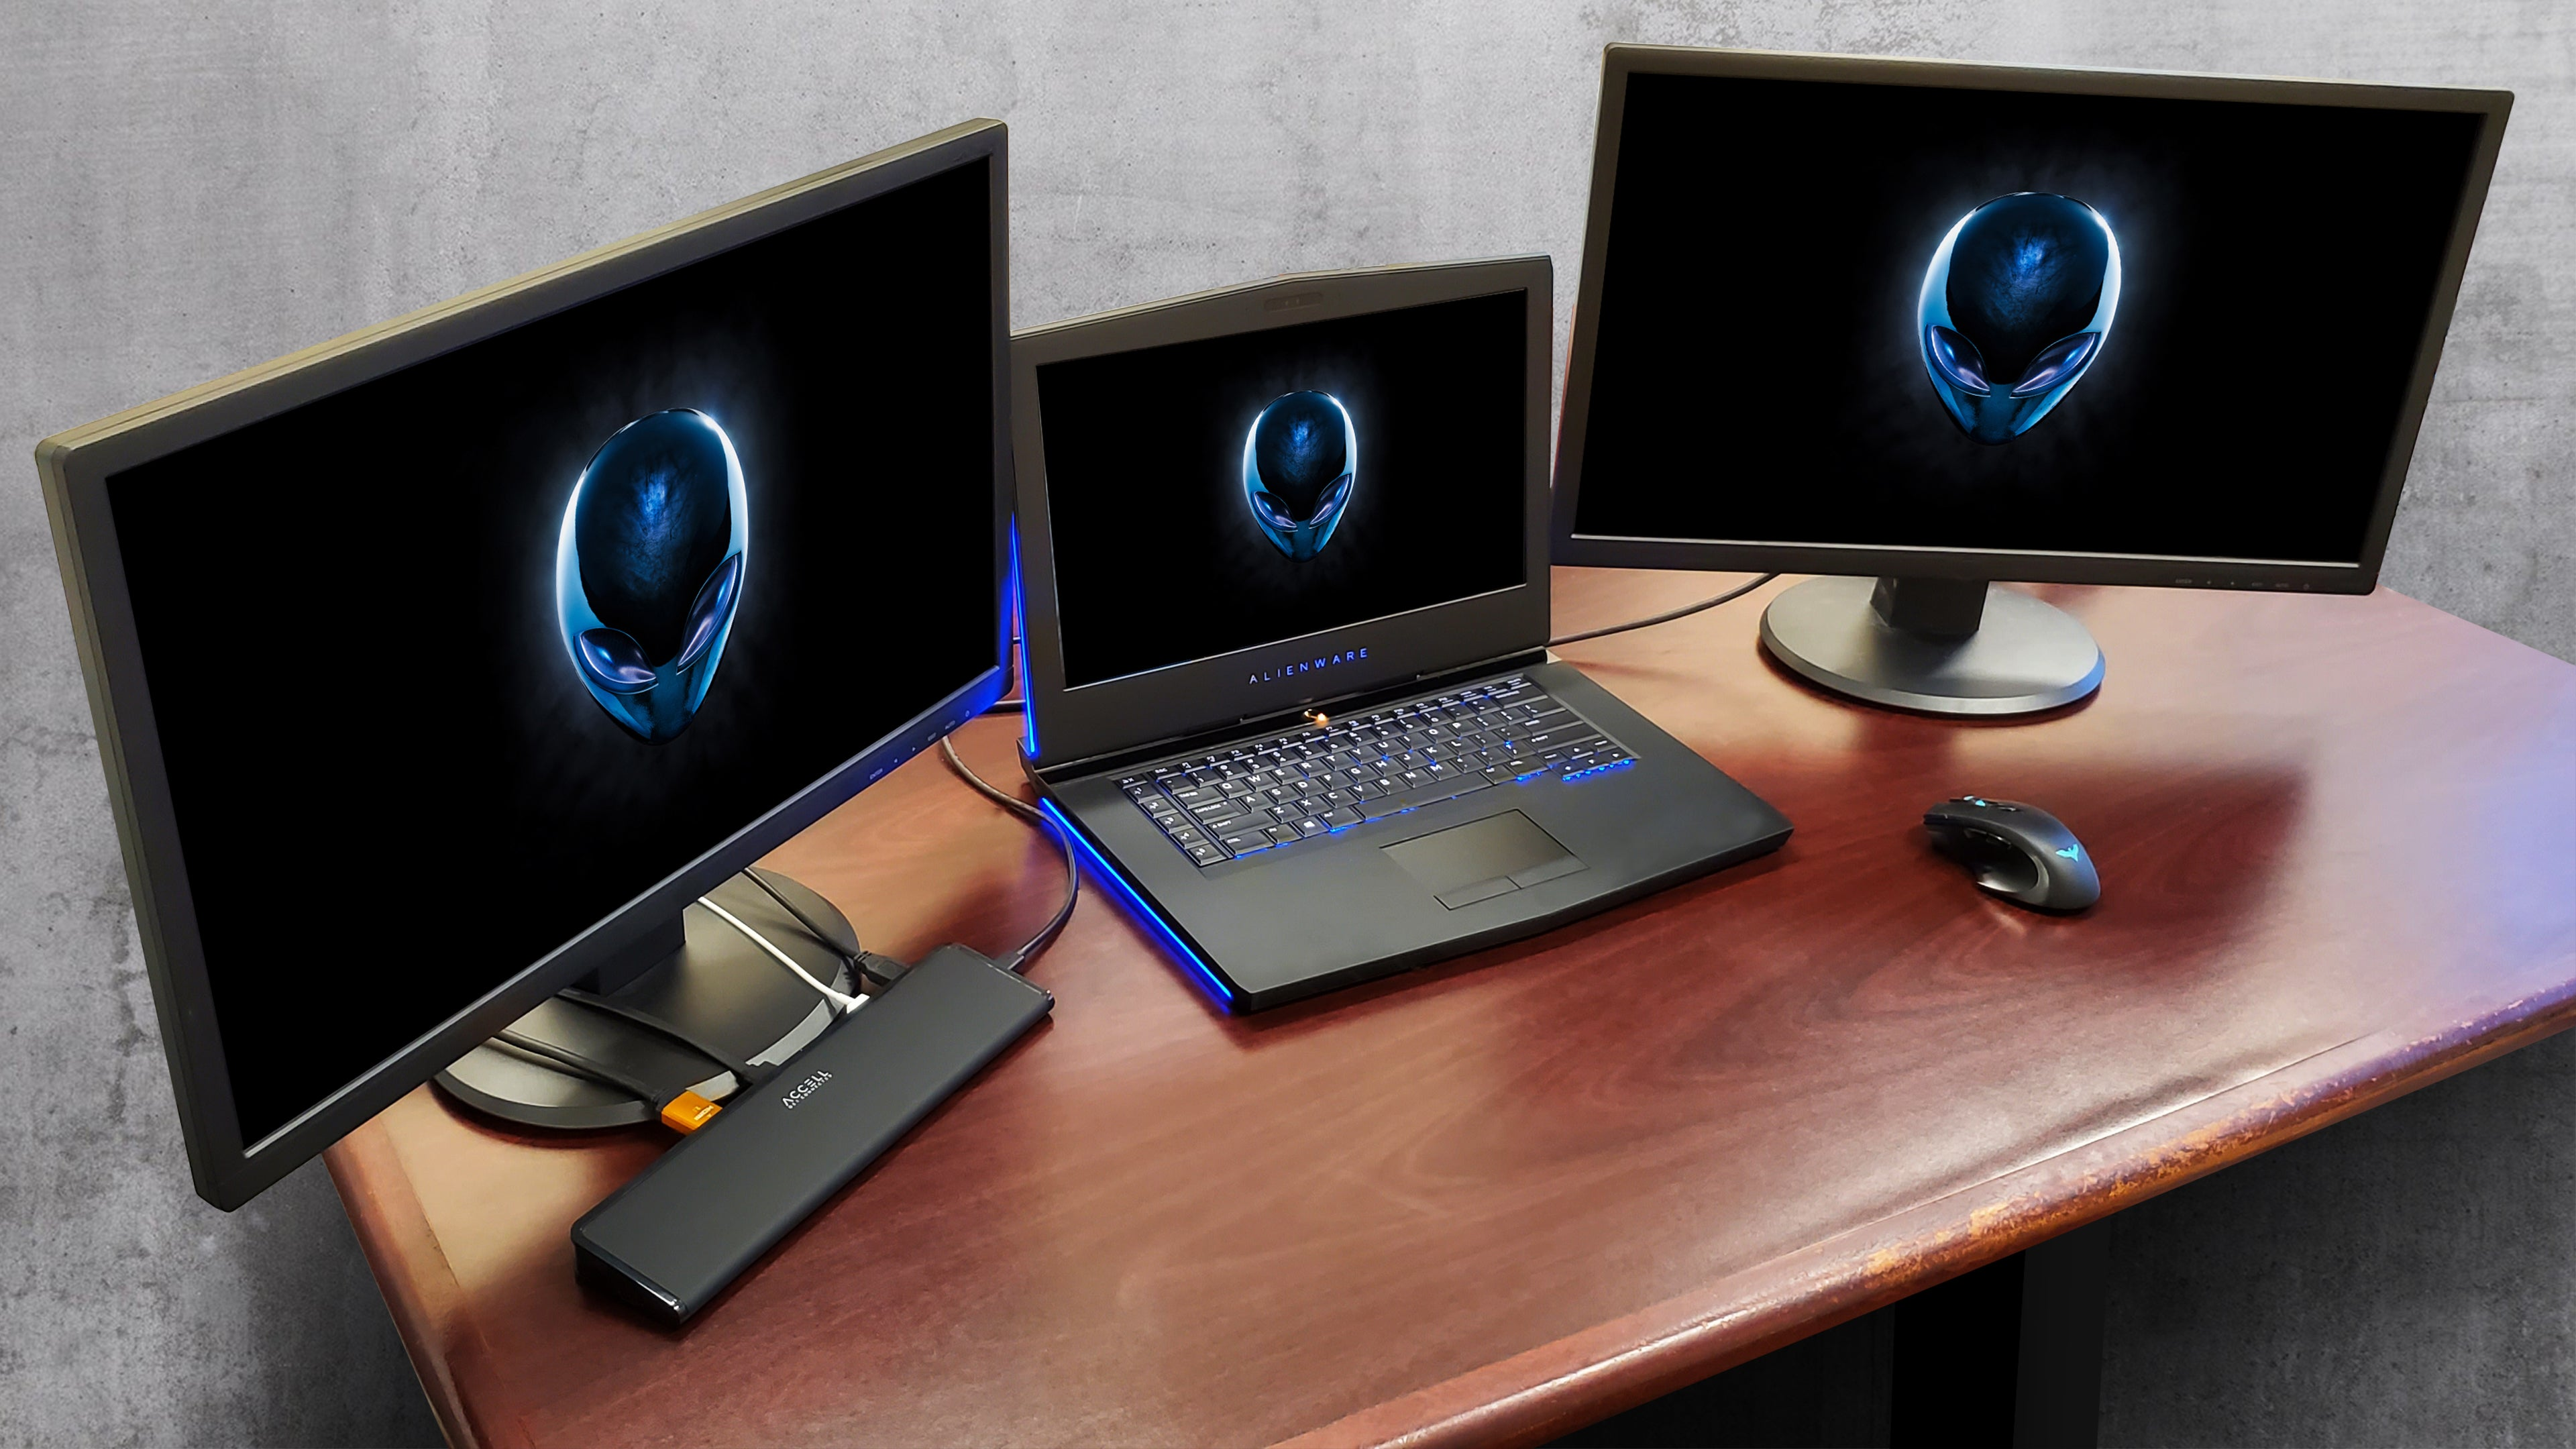 The driver-less dock effortlessly connects and expand 2 external monitor from host laptop